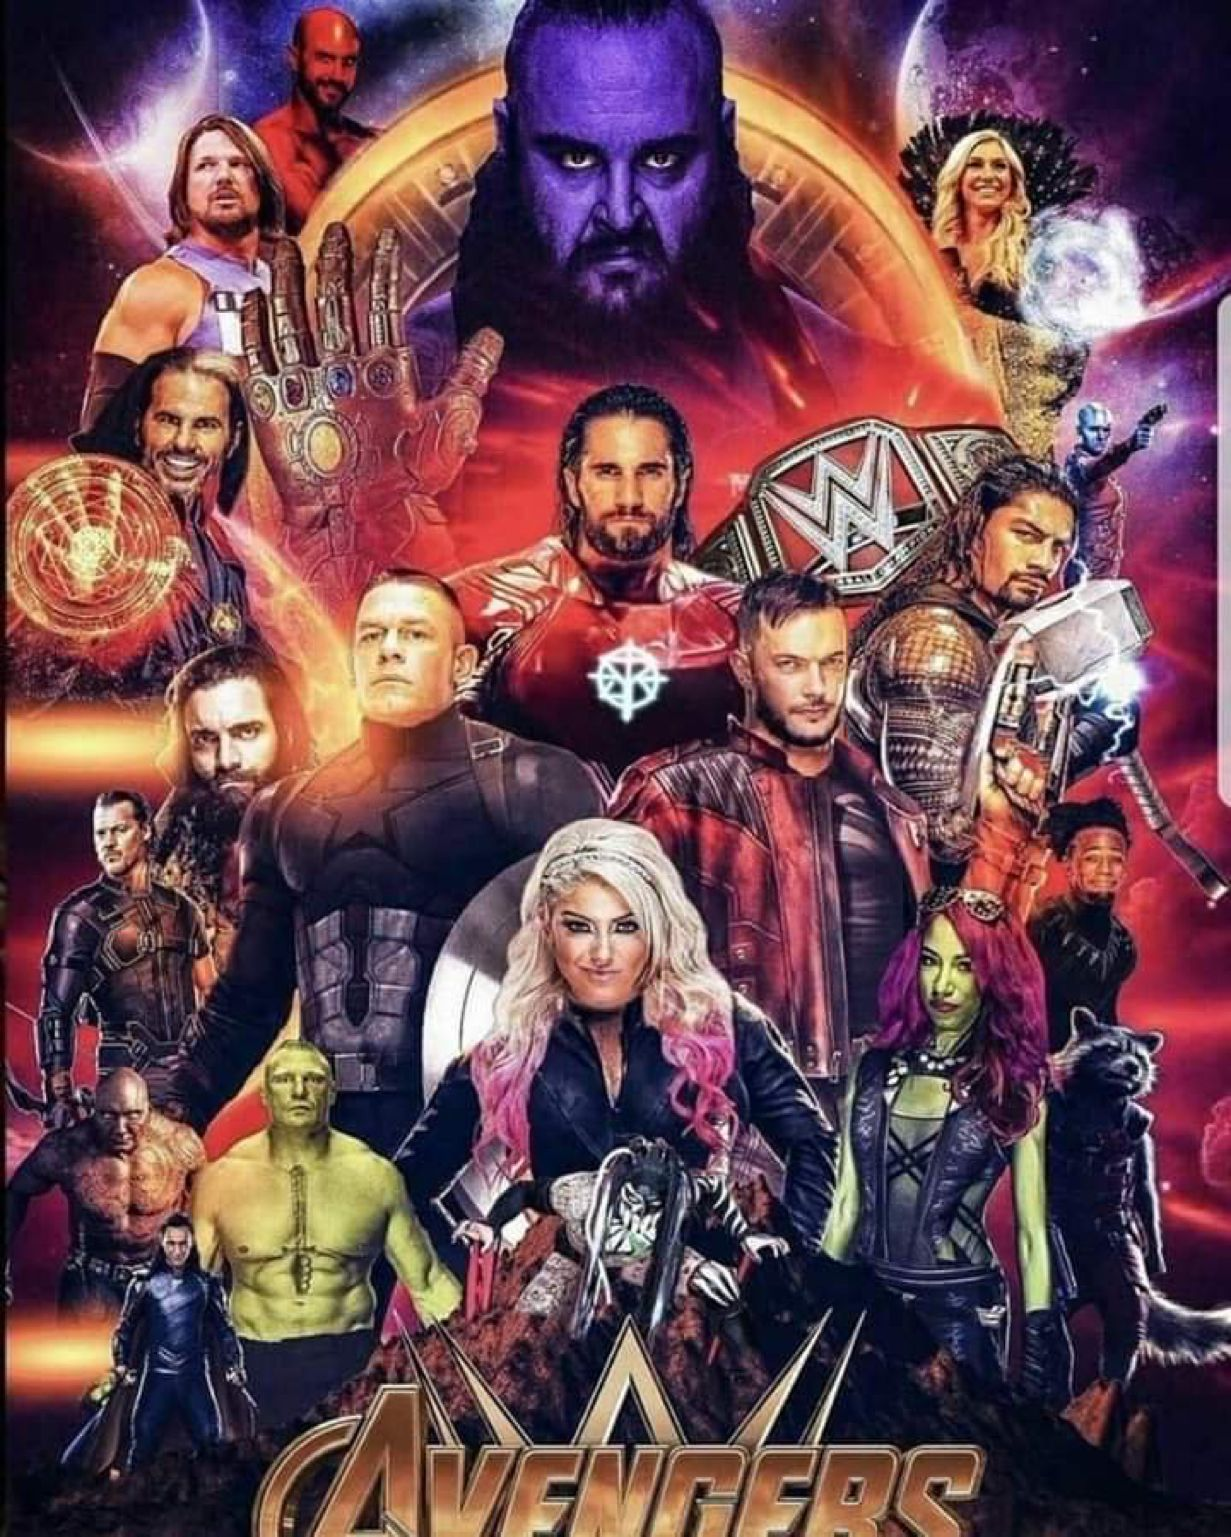 Pin by T.J. Waege on WWE Wrestling Moments (With images